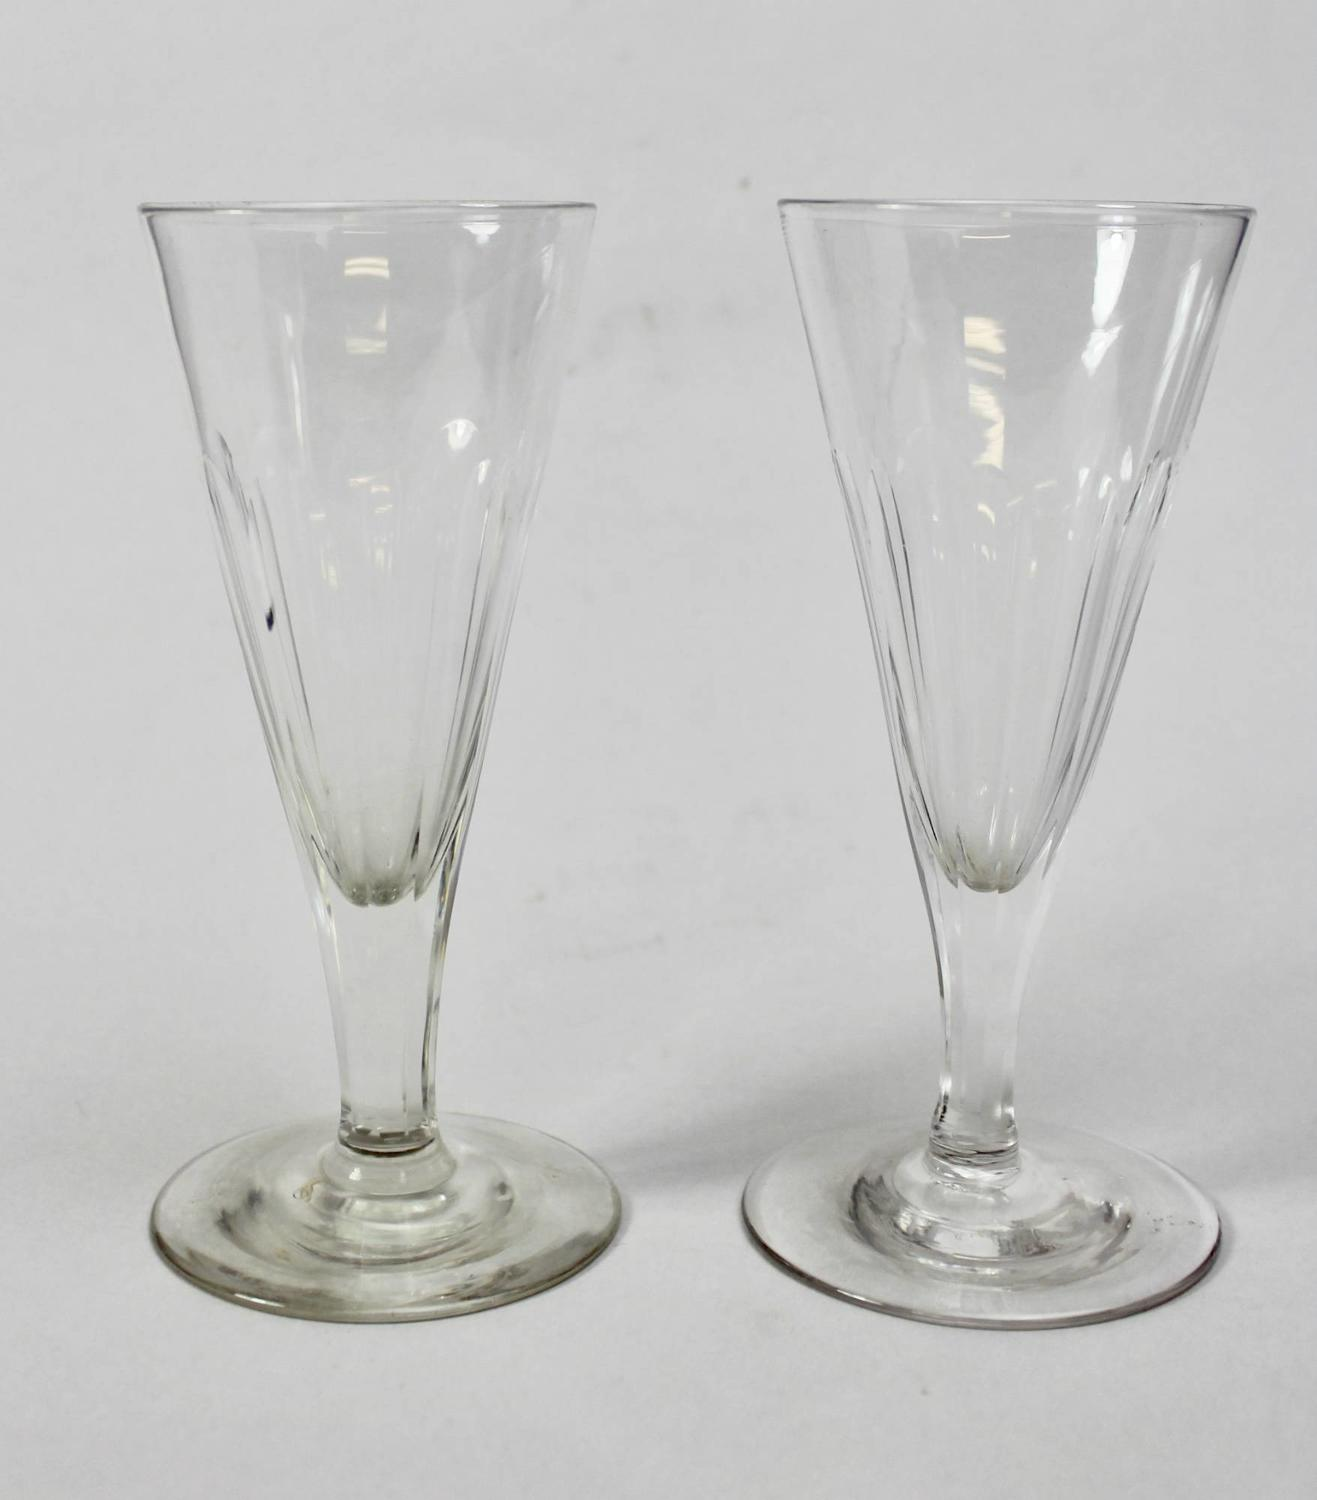 A pair of Antique Cut Glass Champagne Flutes